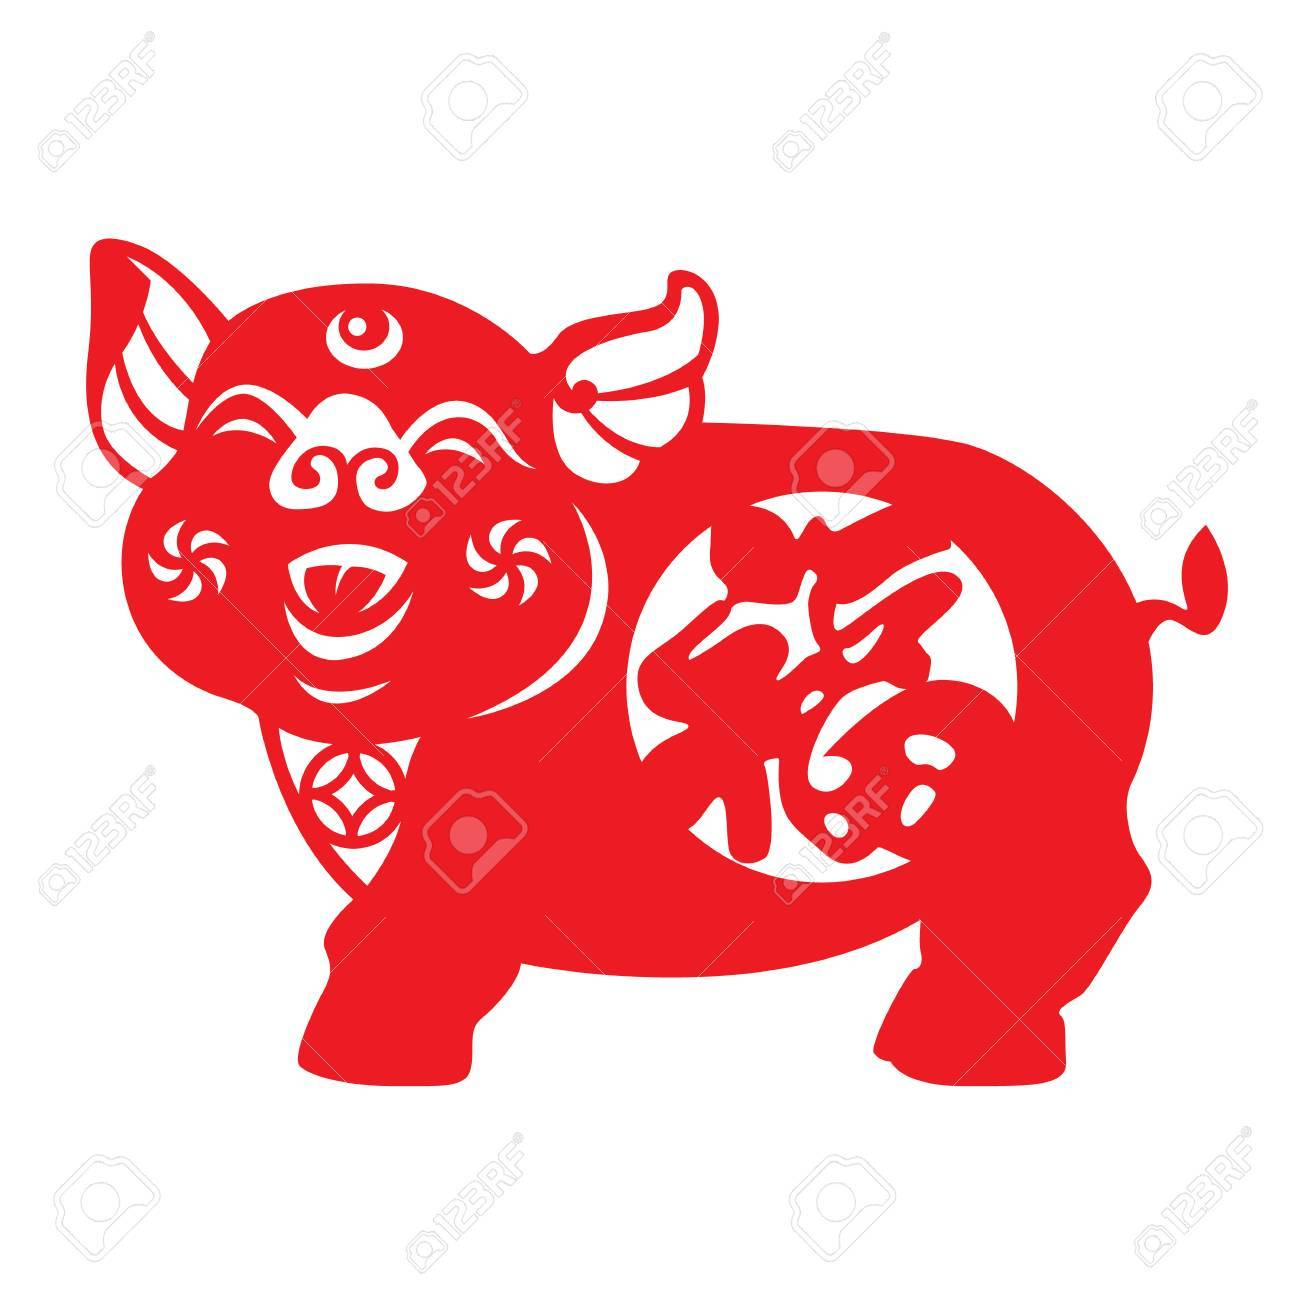 Red paper cut pig zodiac sign isolate on white background vector design (Chinese word mean Good Fortune)